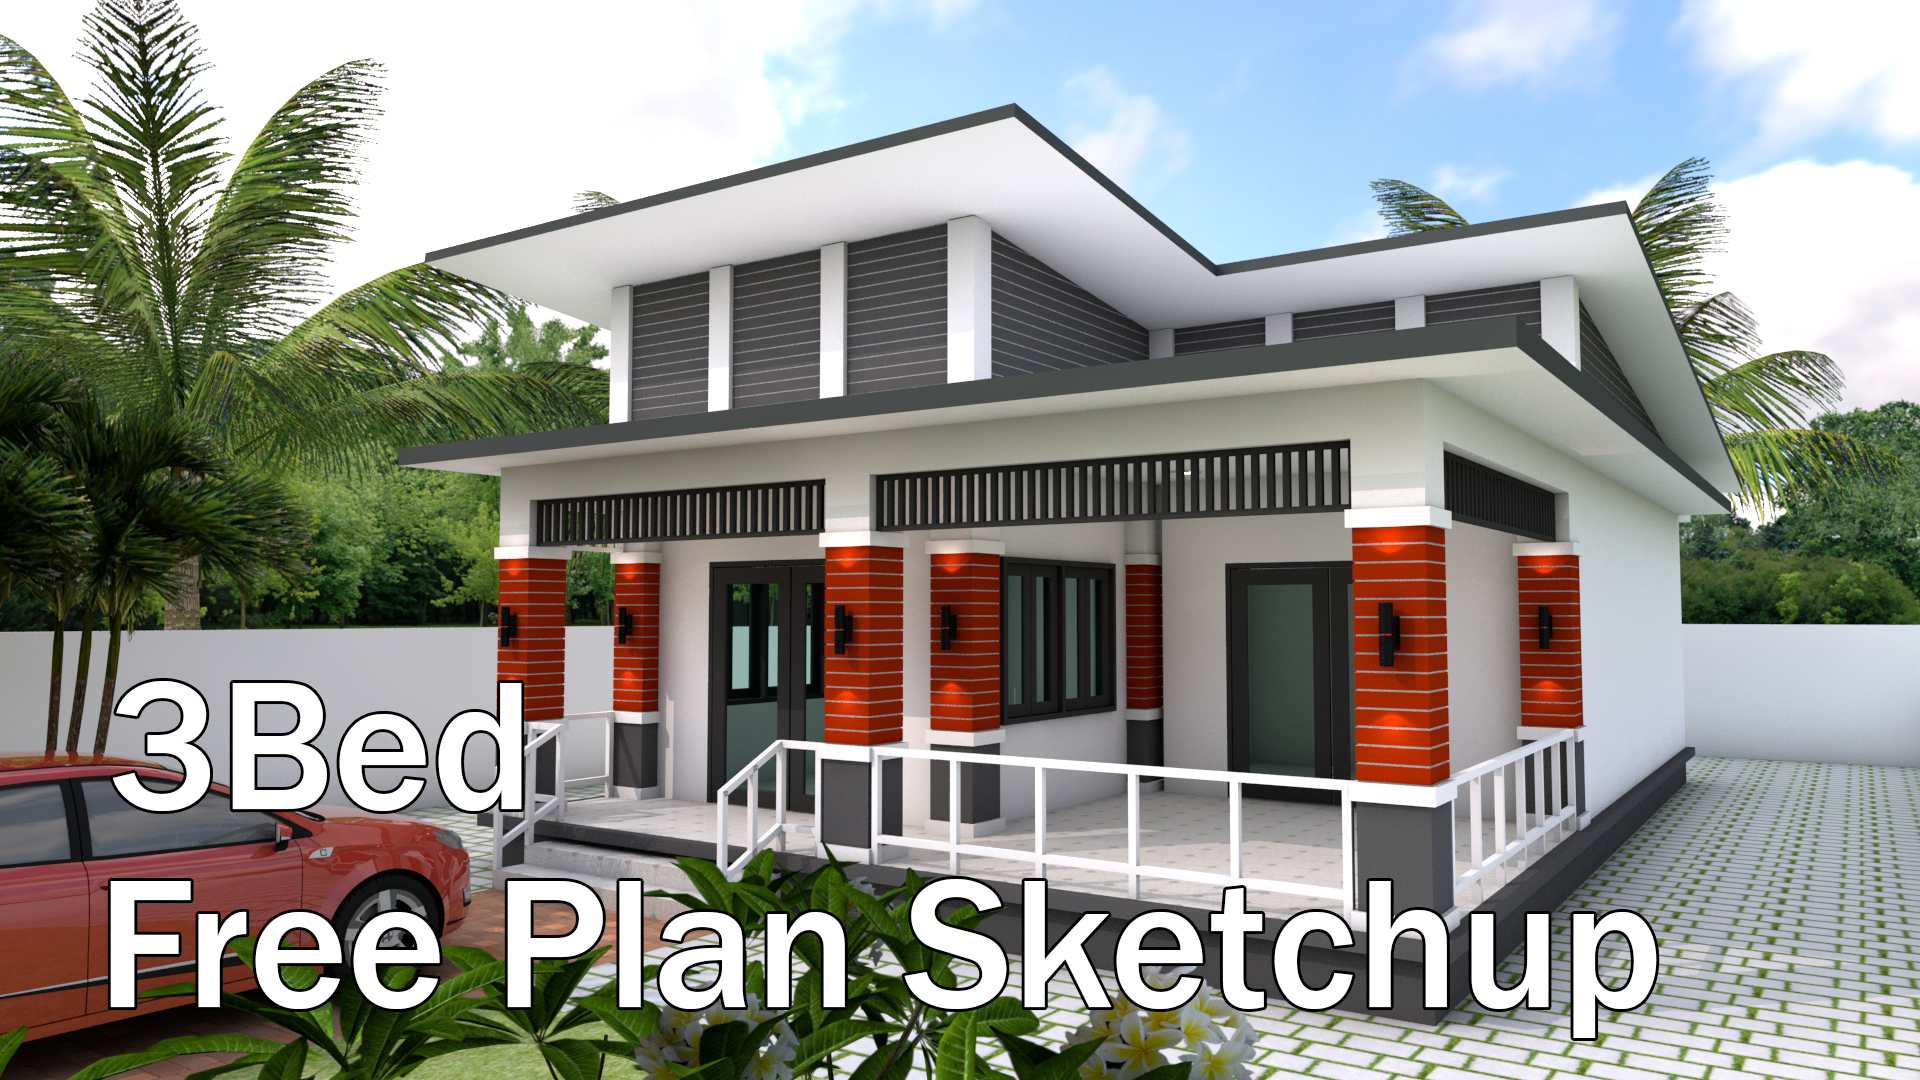 bungalow house design 9135 meter with 3 bedrooms - Bungalow House With 3 Bedrooms